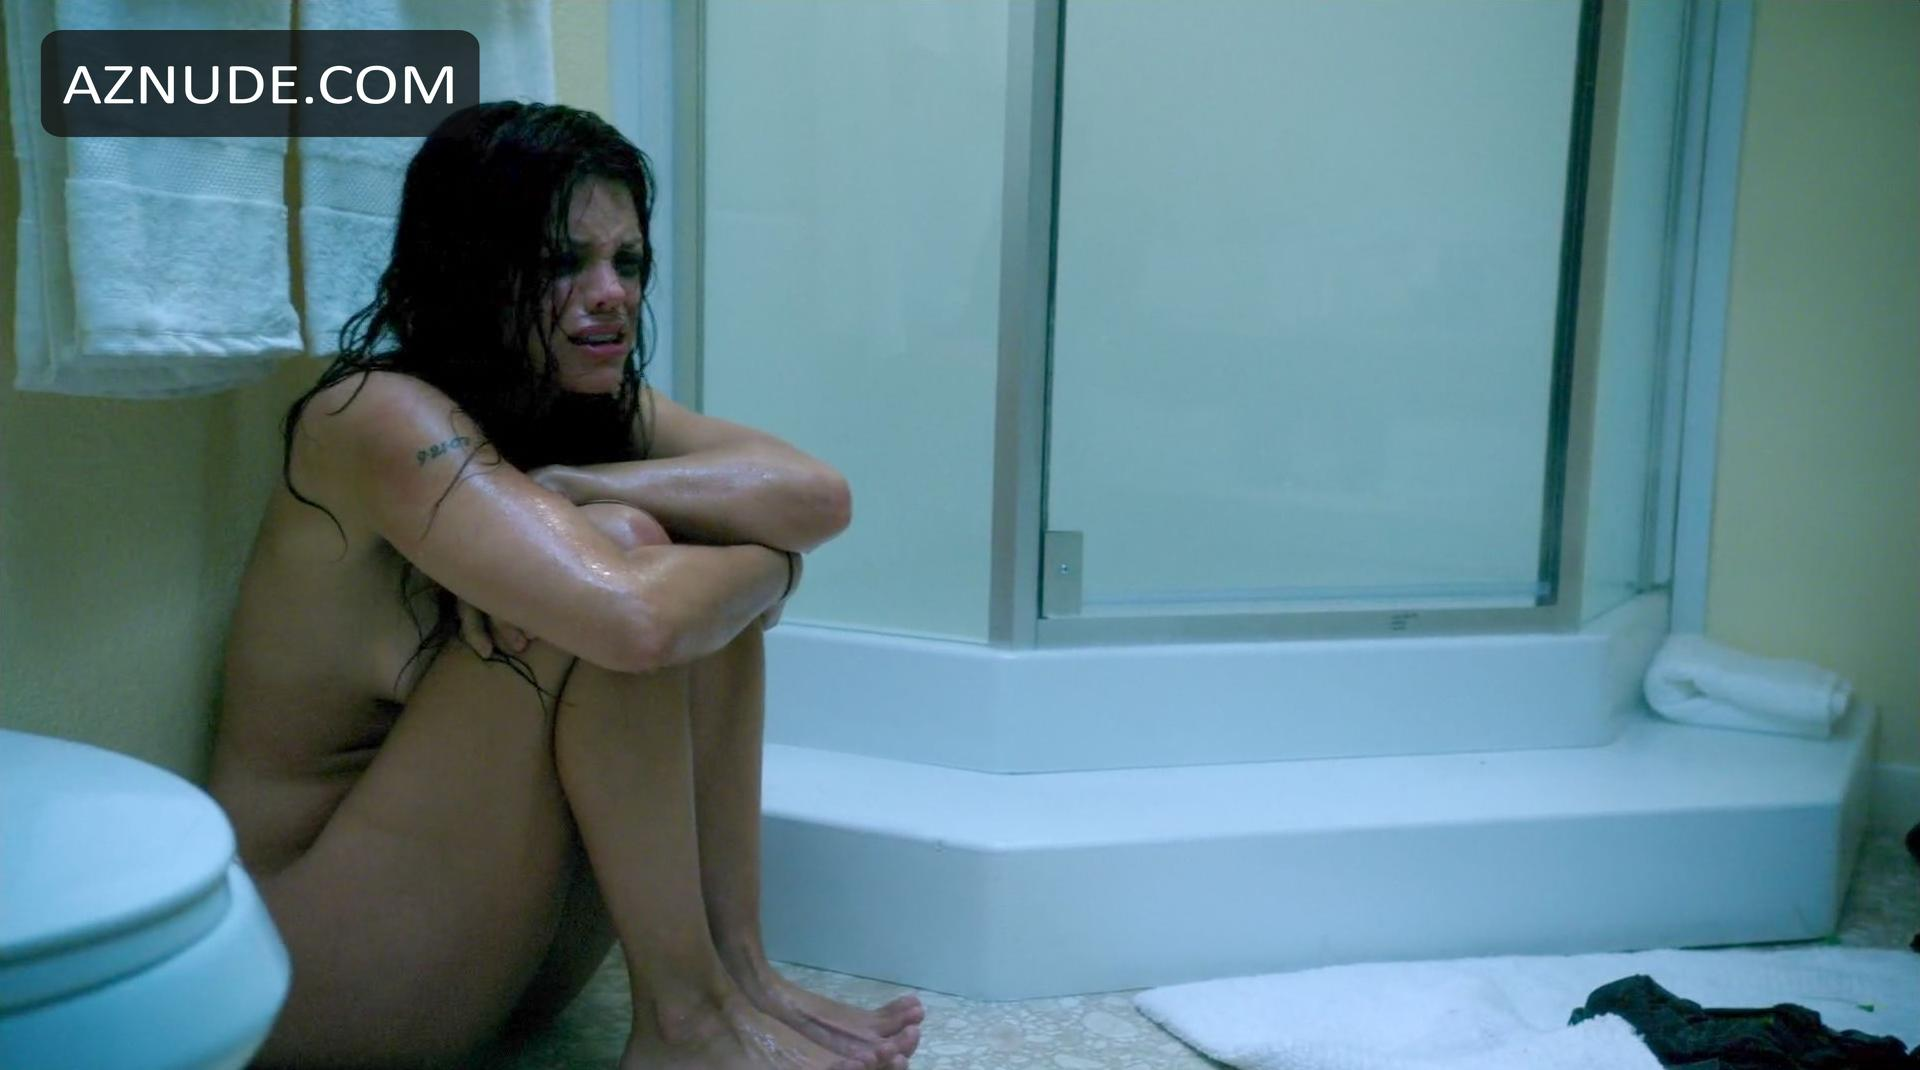 Vanessa Ferlito Nude Video 3